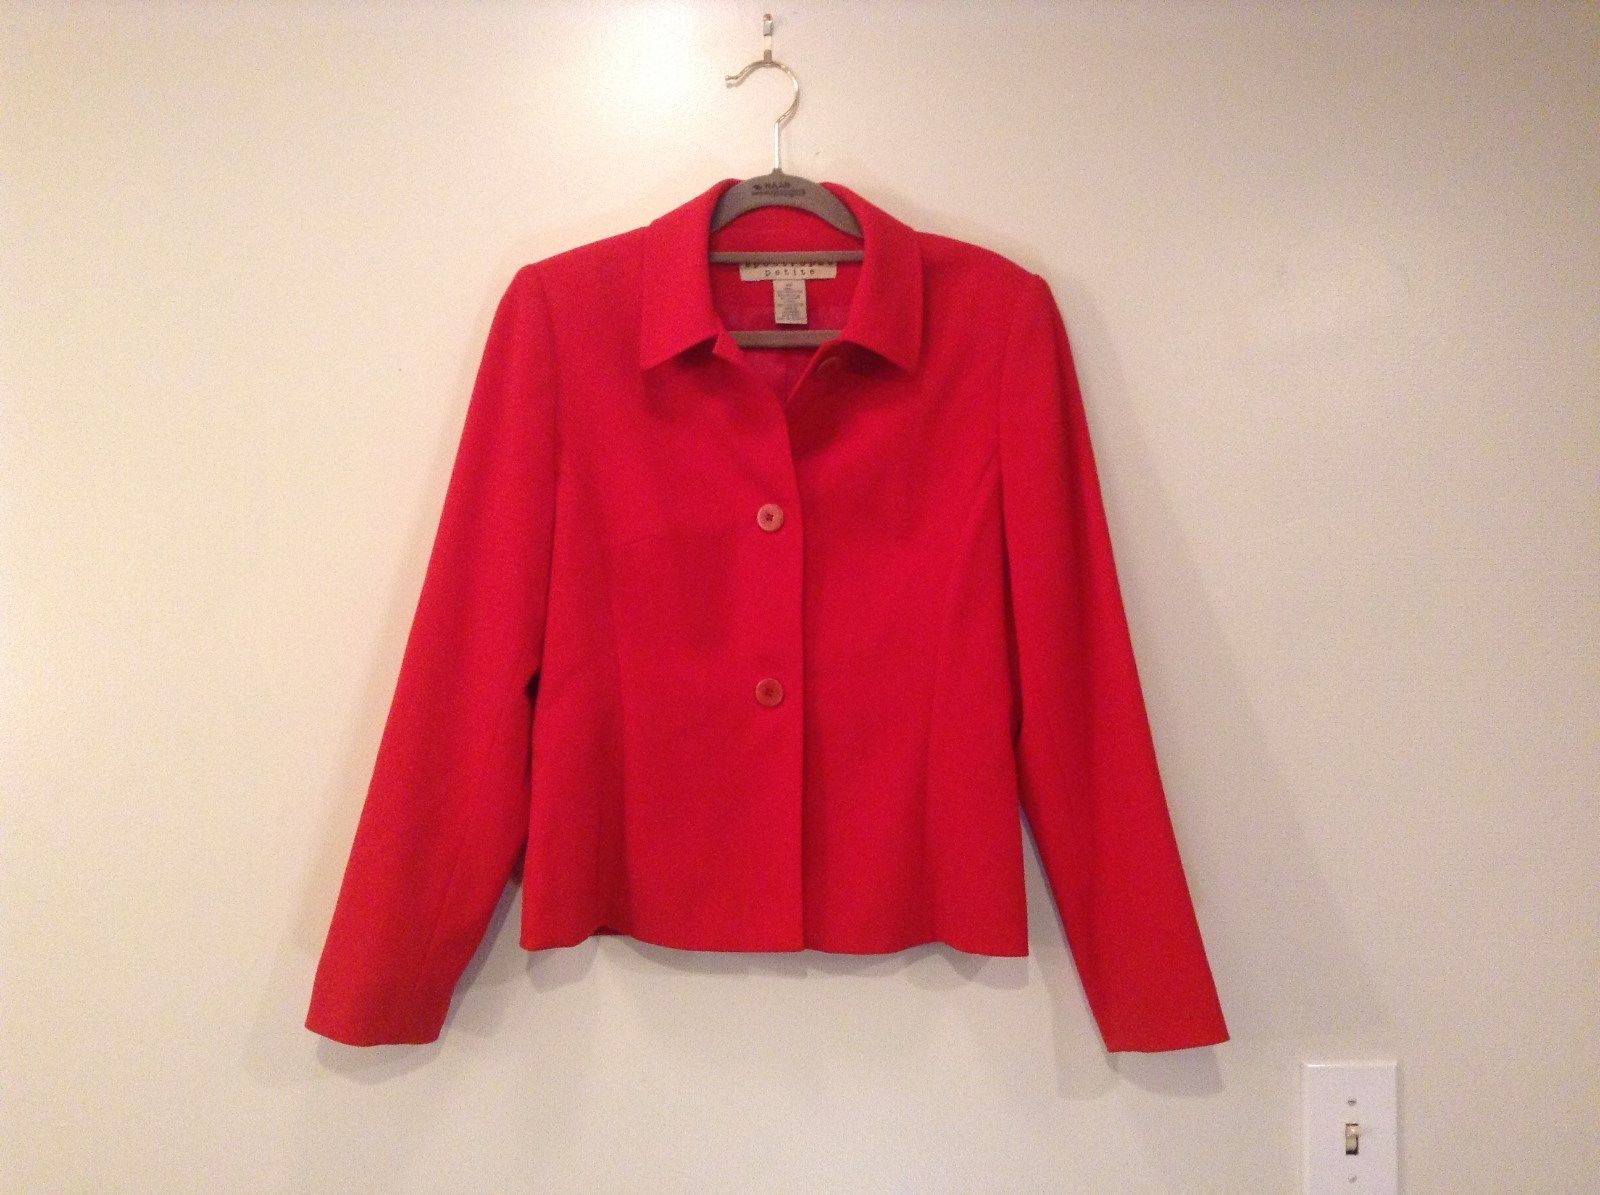 Bright Red Apostrophe Petite Fully Lined Light Jacket Blazer Size 6P